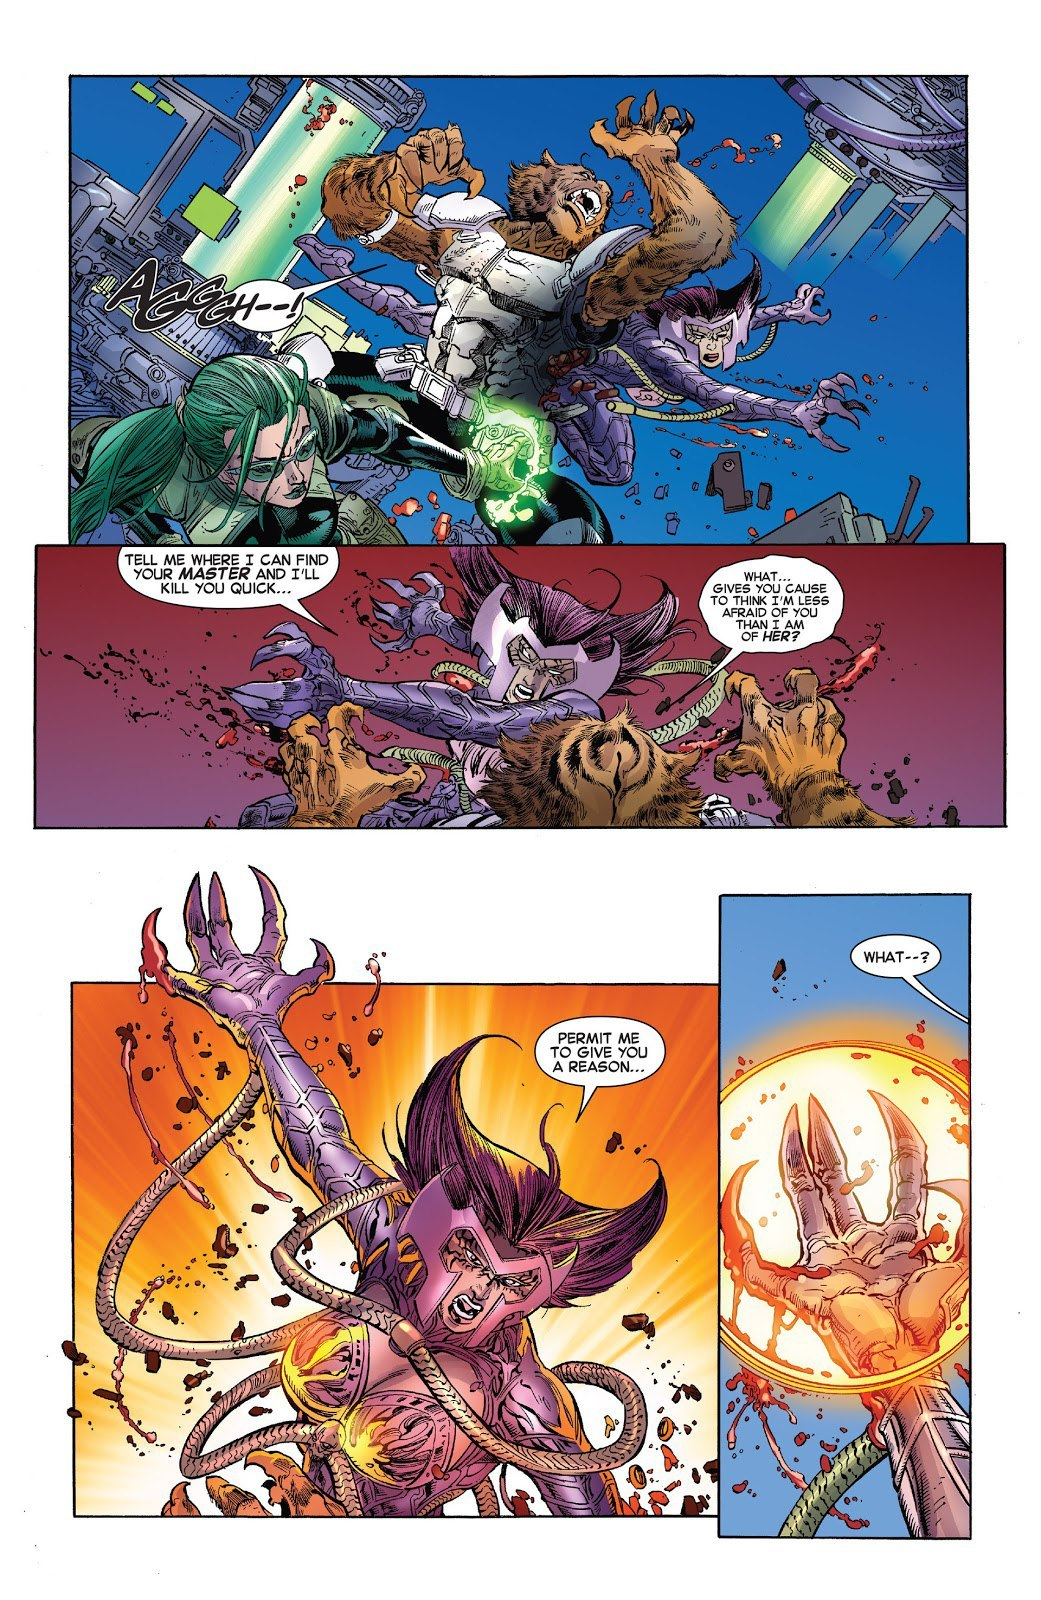 Restrains Deathbird a frequent opponent of Captain Marvel